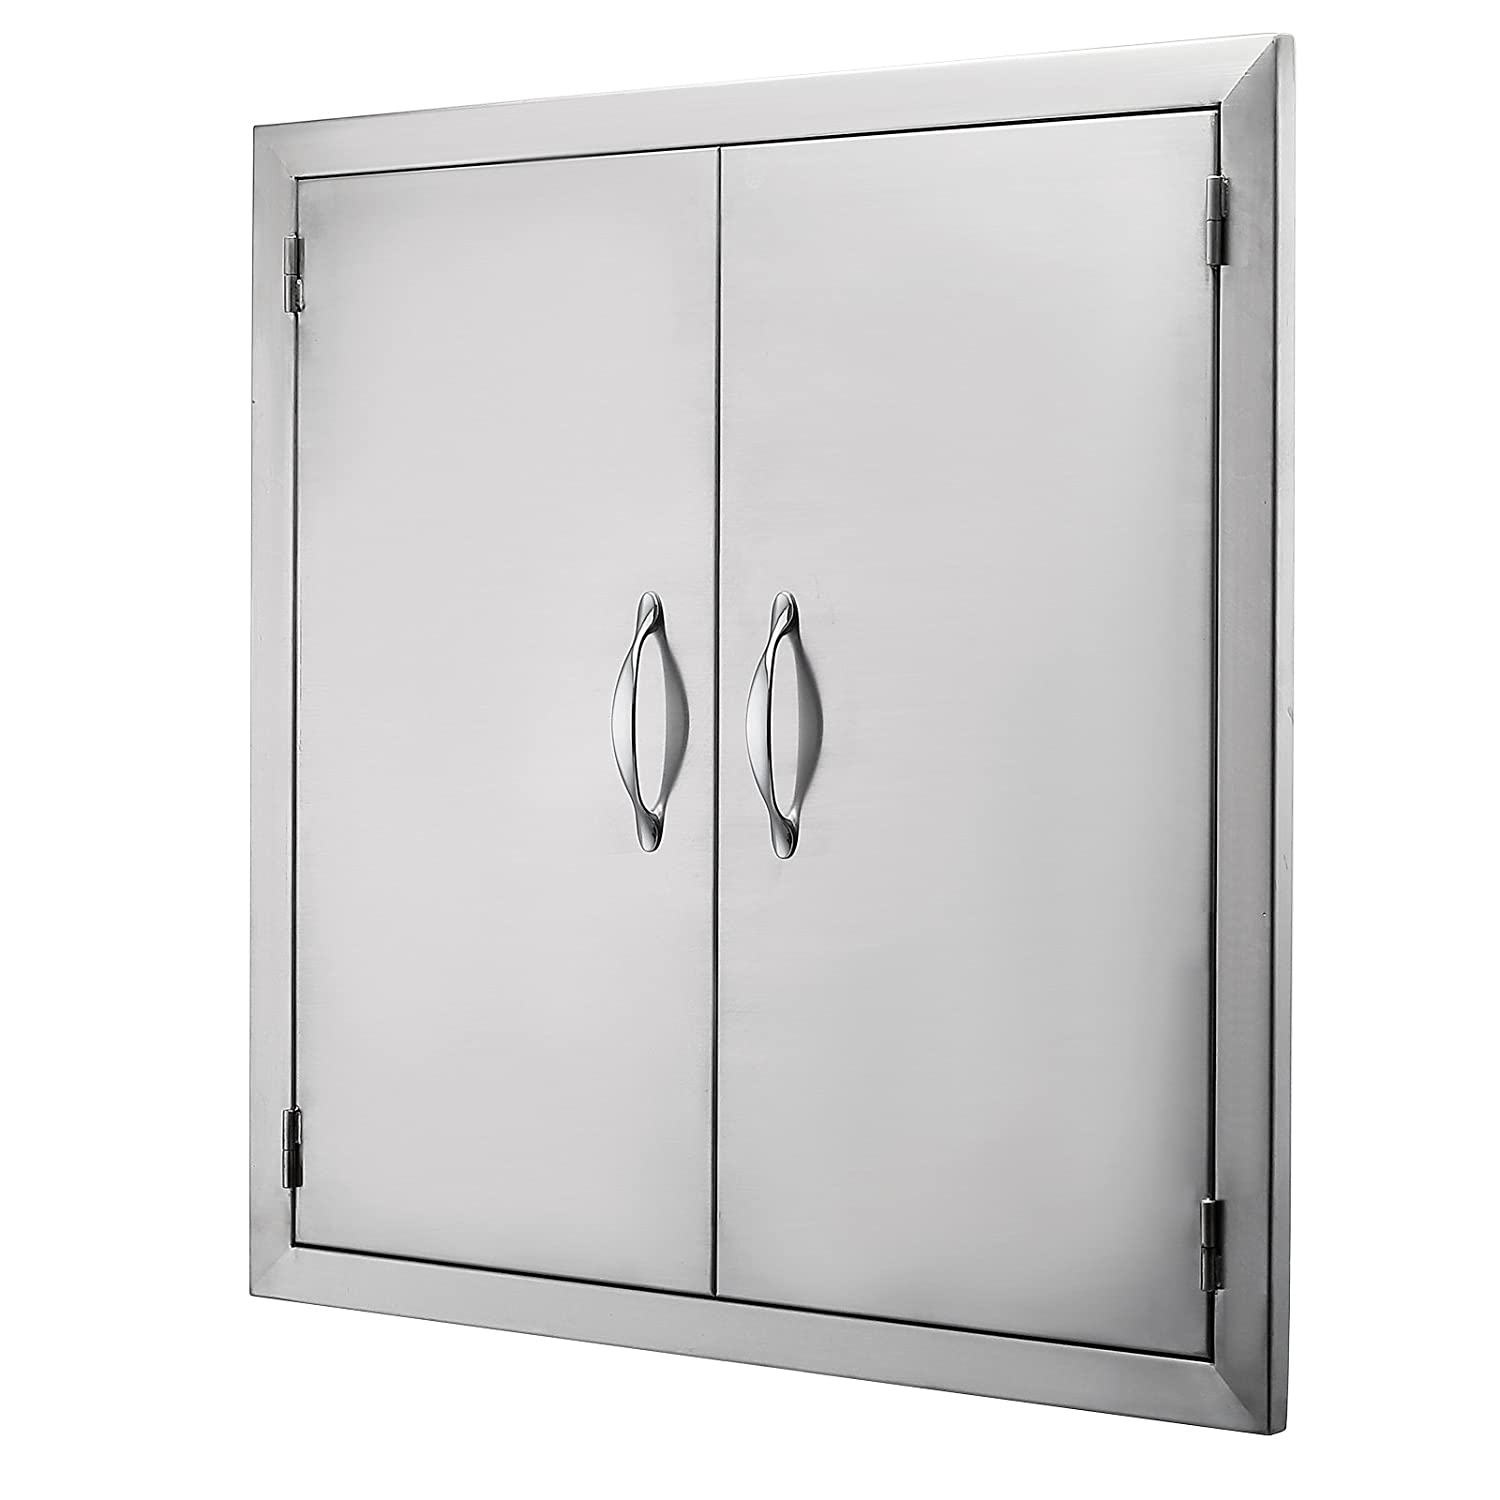 Mophorn Double Wall BBQ Access Door Cutout 24 Width x 24 Height BBQ Island Door w//Brushed Stainless Steel Perfect for Outdoor Kitchen or BBQ Island